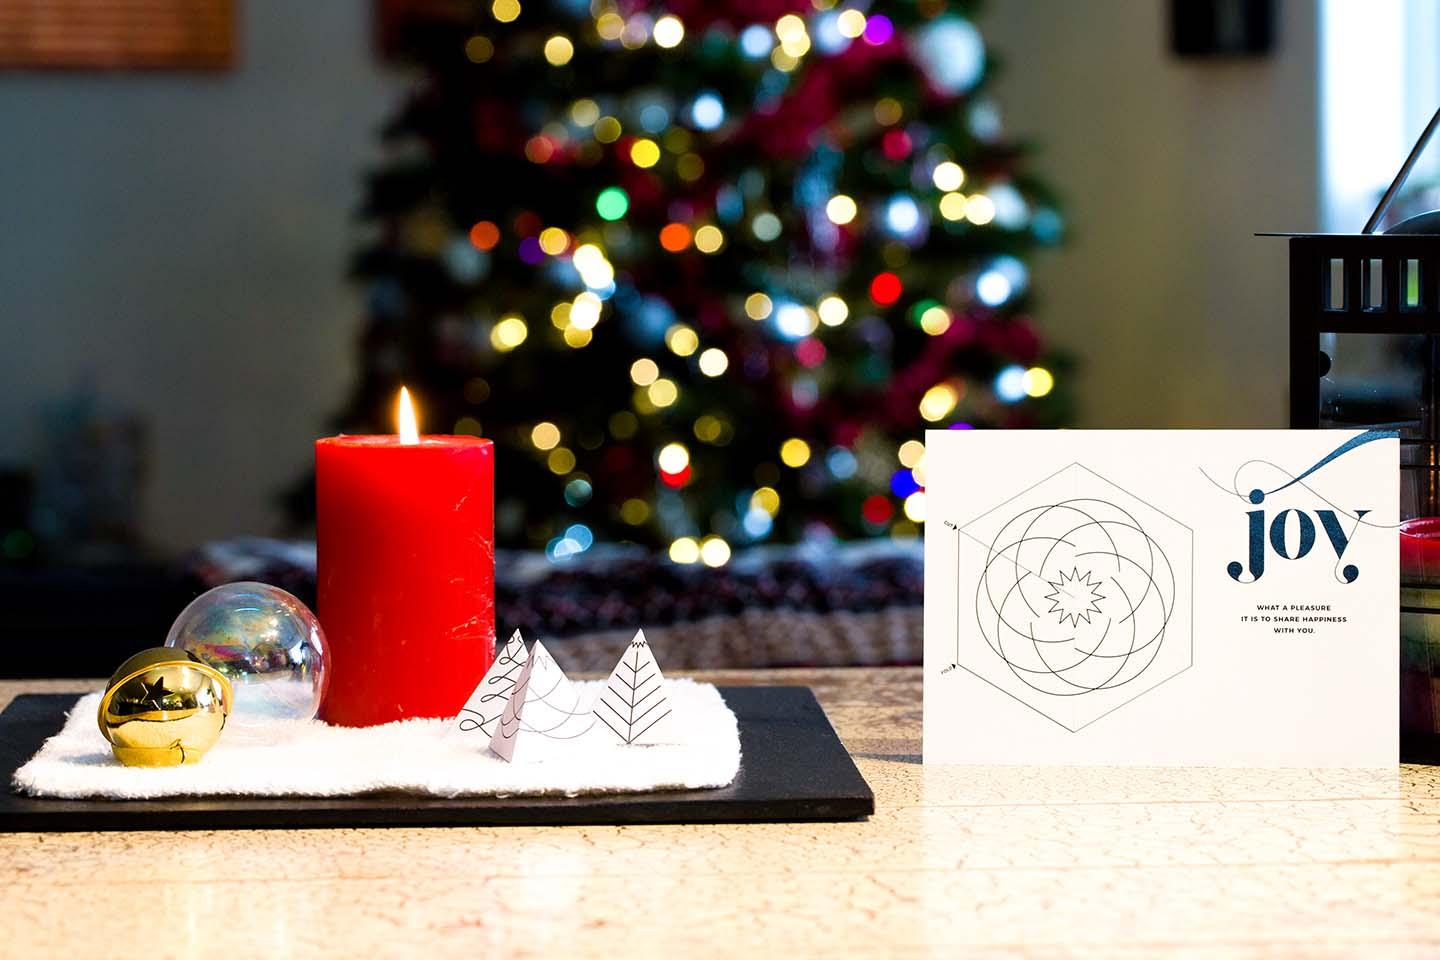 A white Wunderfold card with the word Joy on it next to a candle in front of a lit Christmas tree